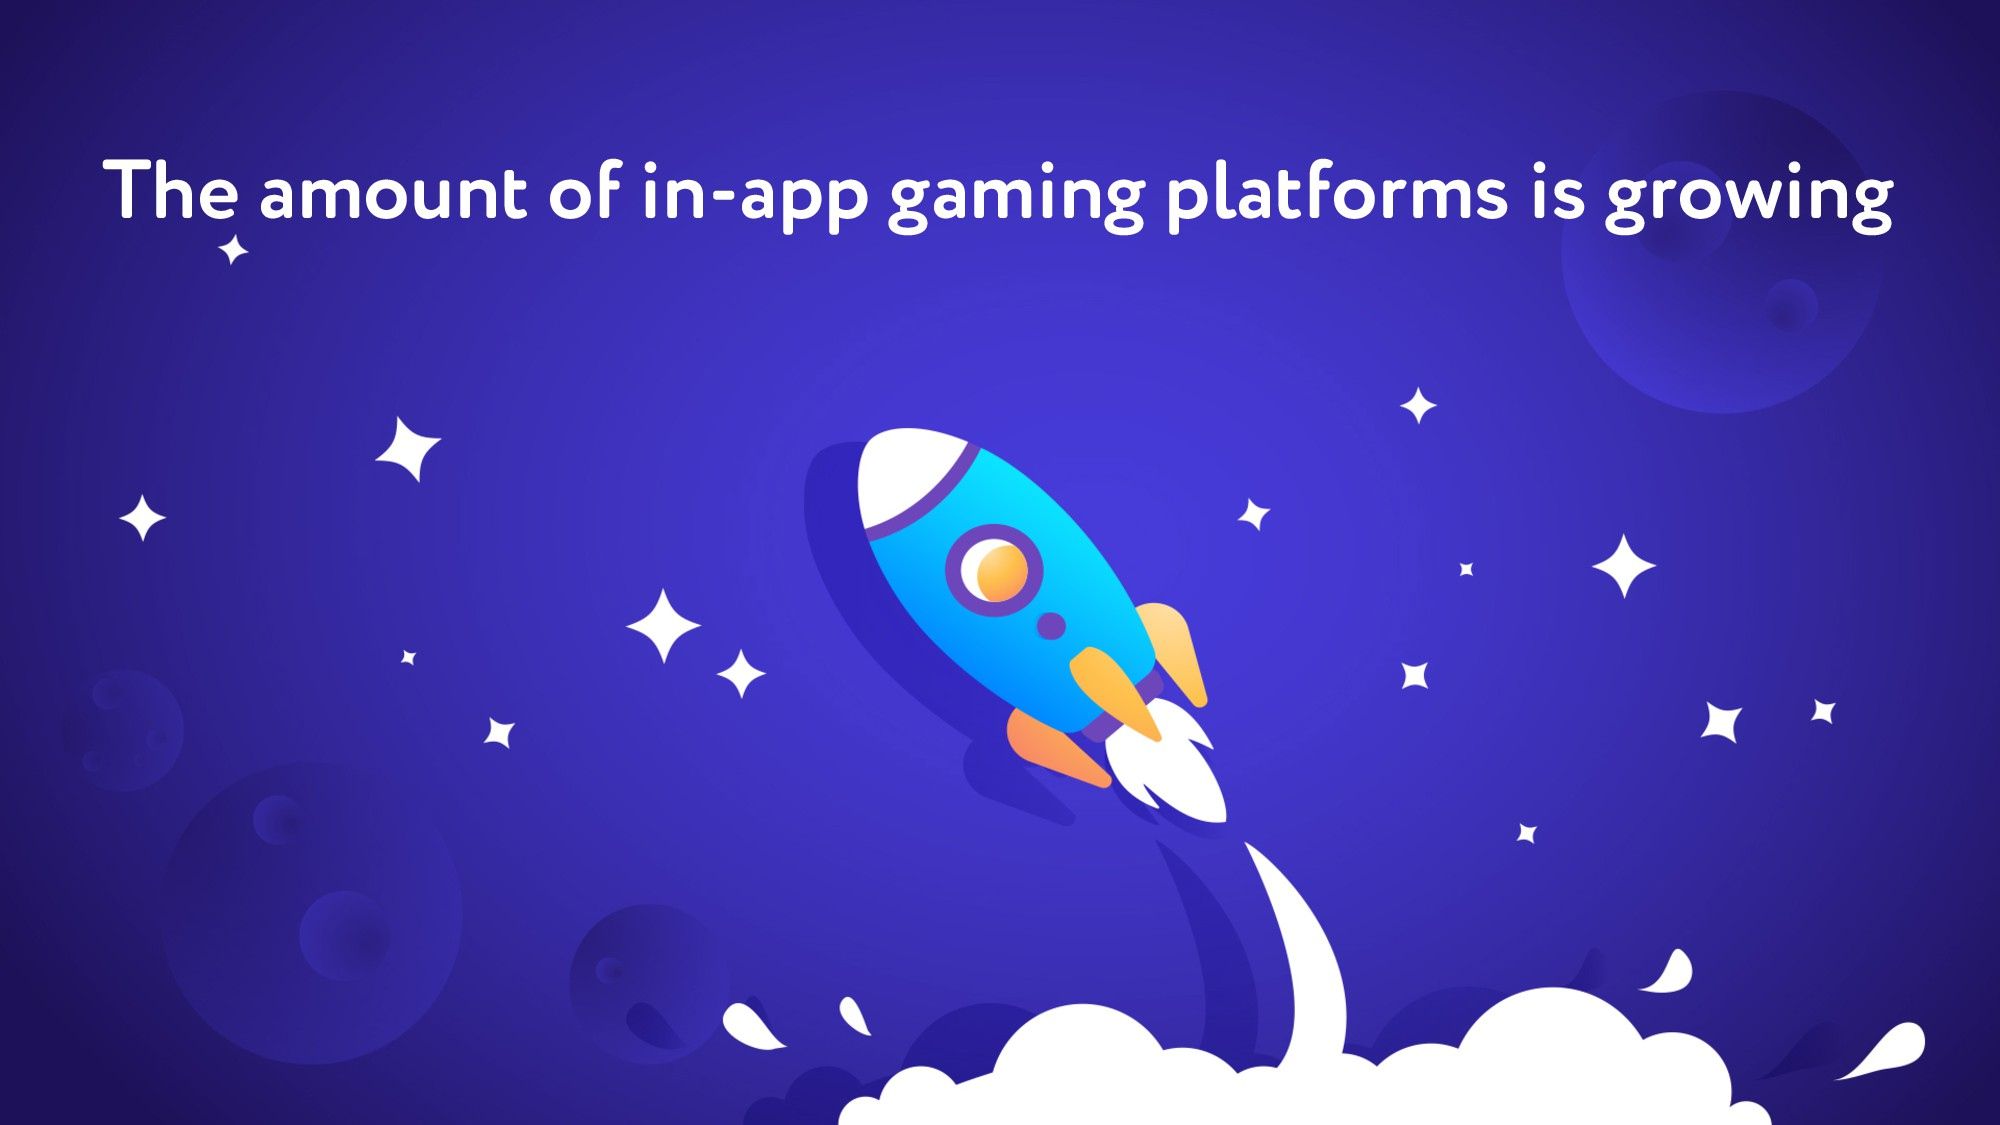 The amount of in-app gaming platforms is growing